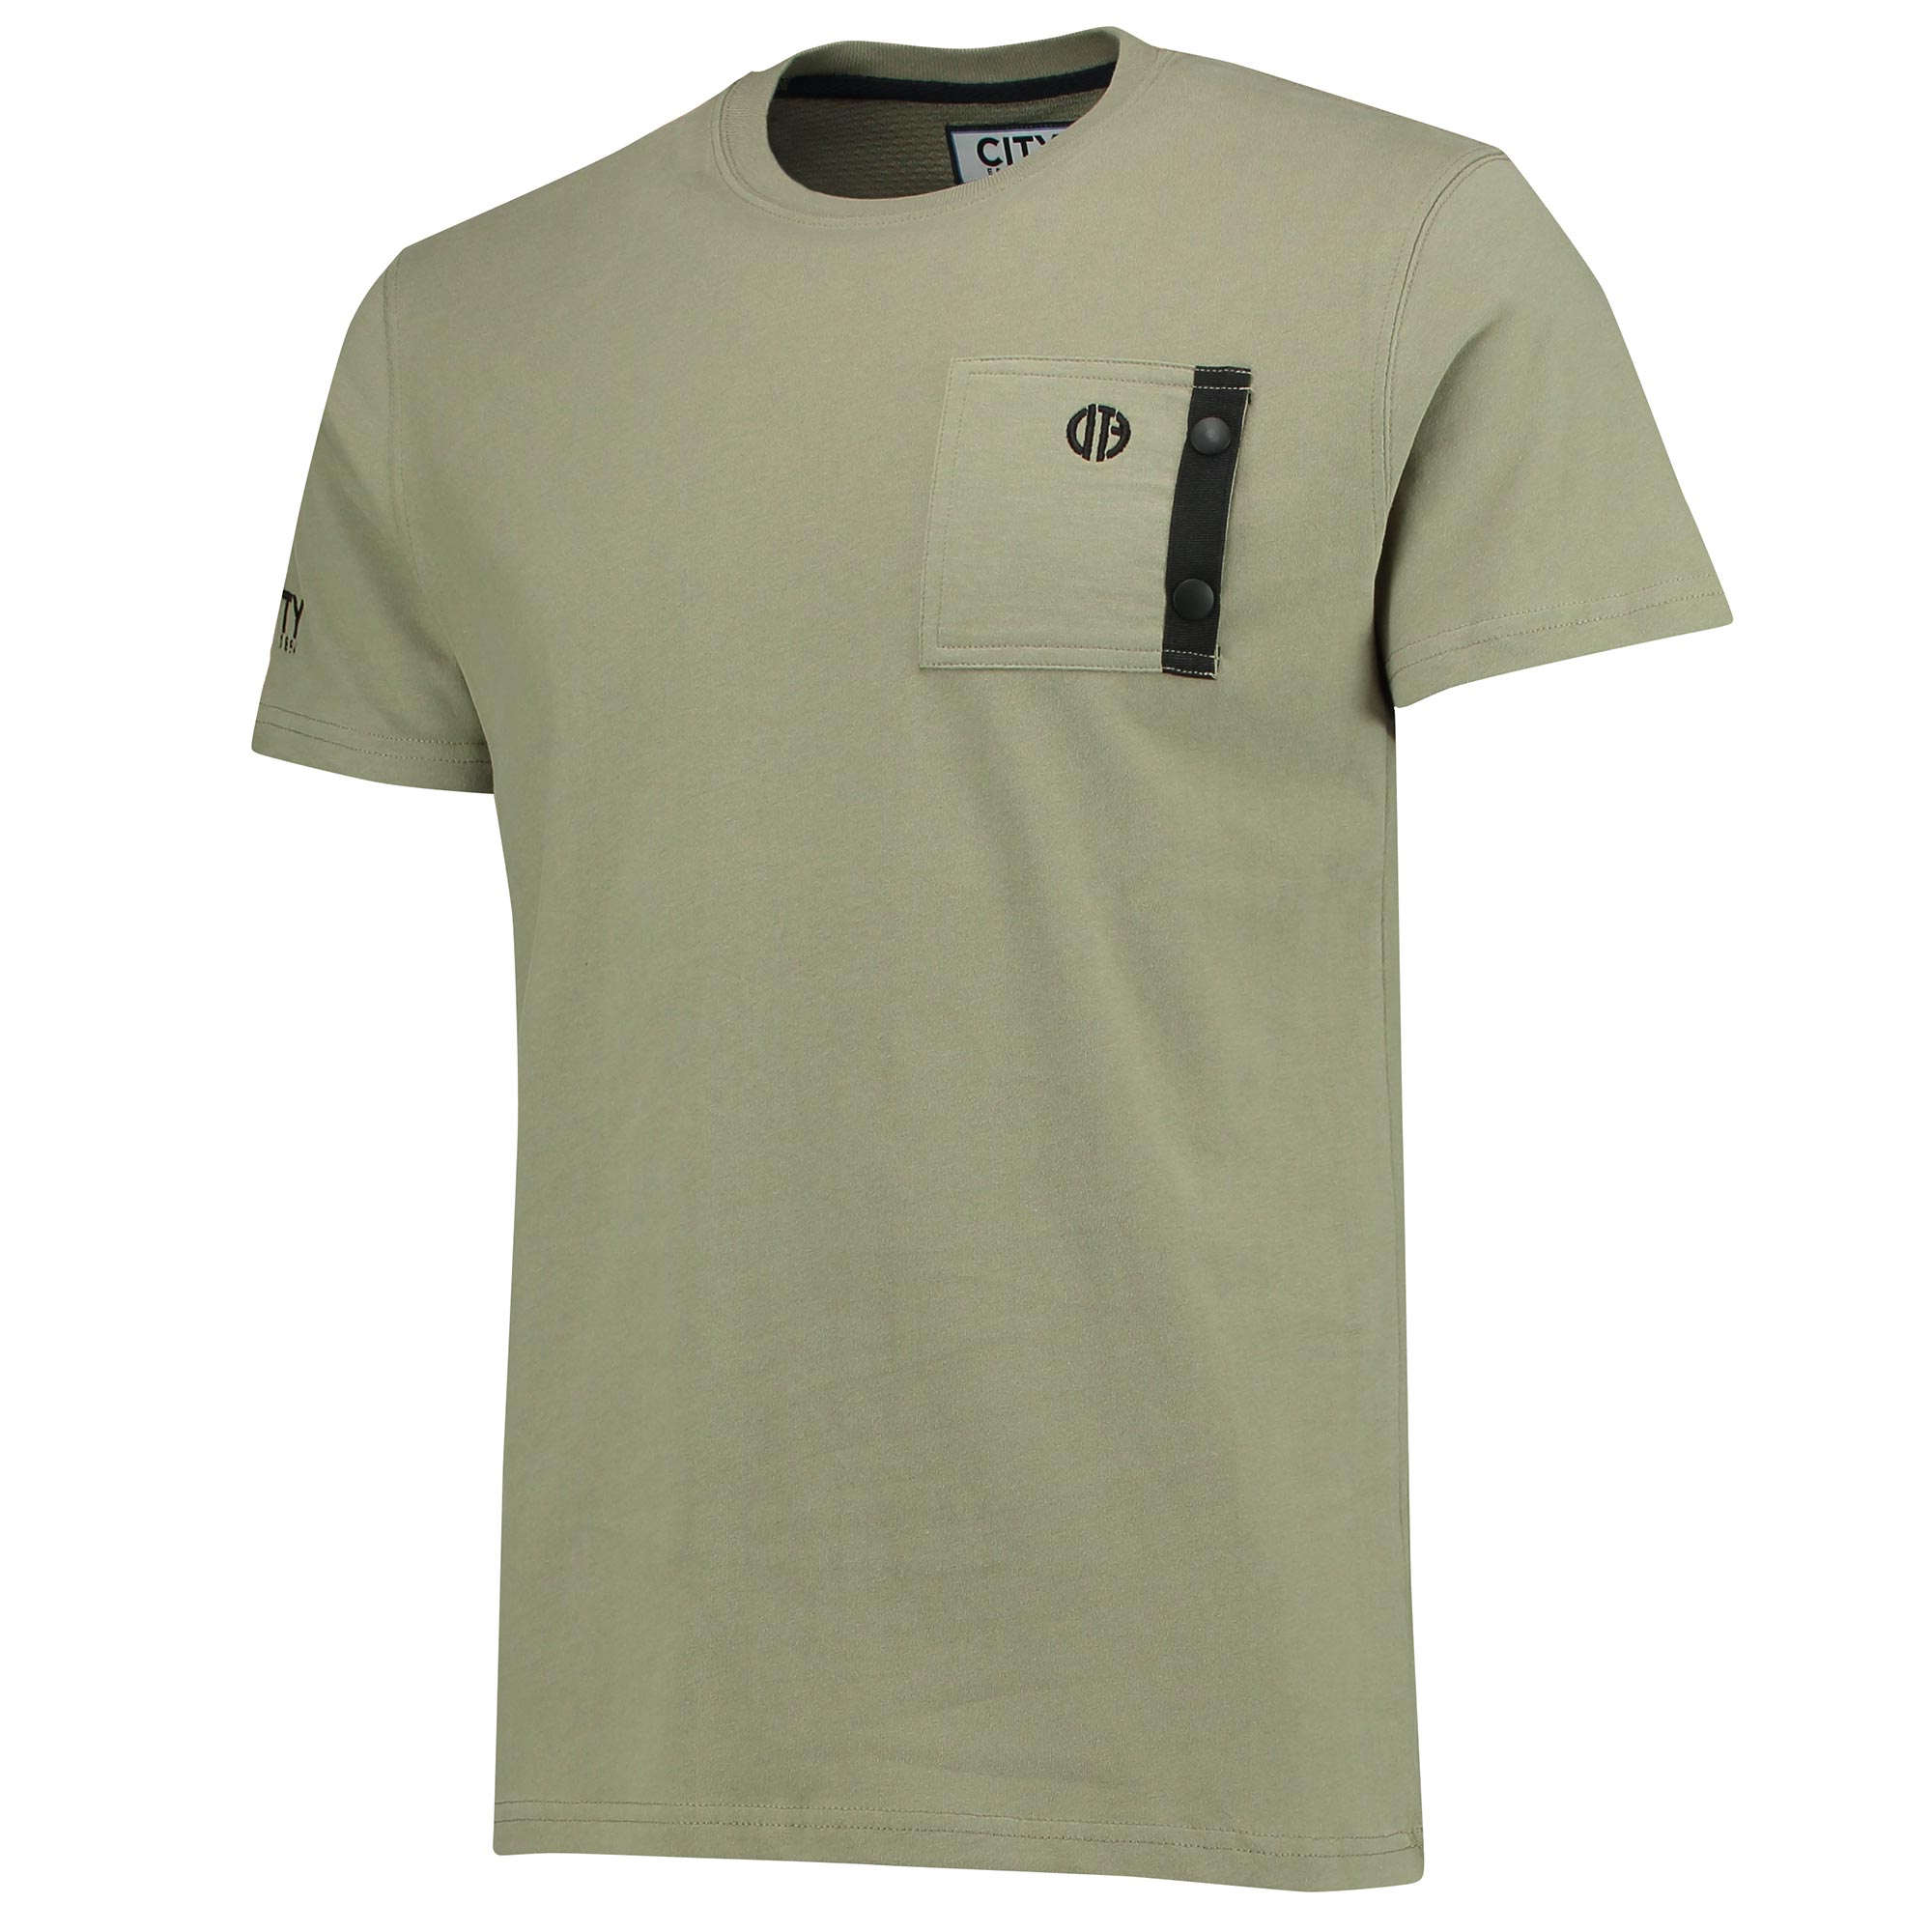 Manchester City Terrace Pocket T-Shirt - Olive